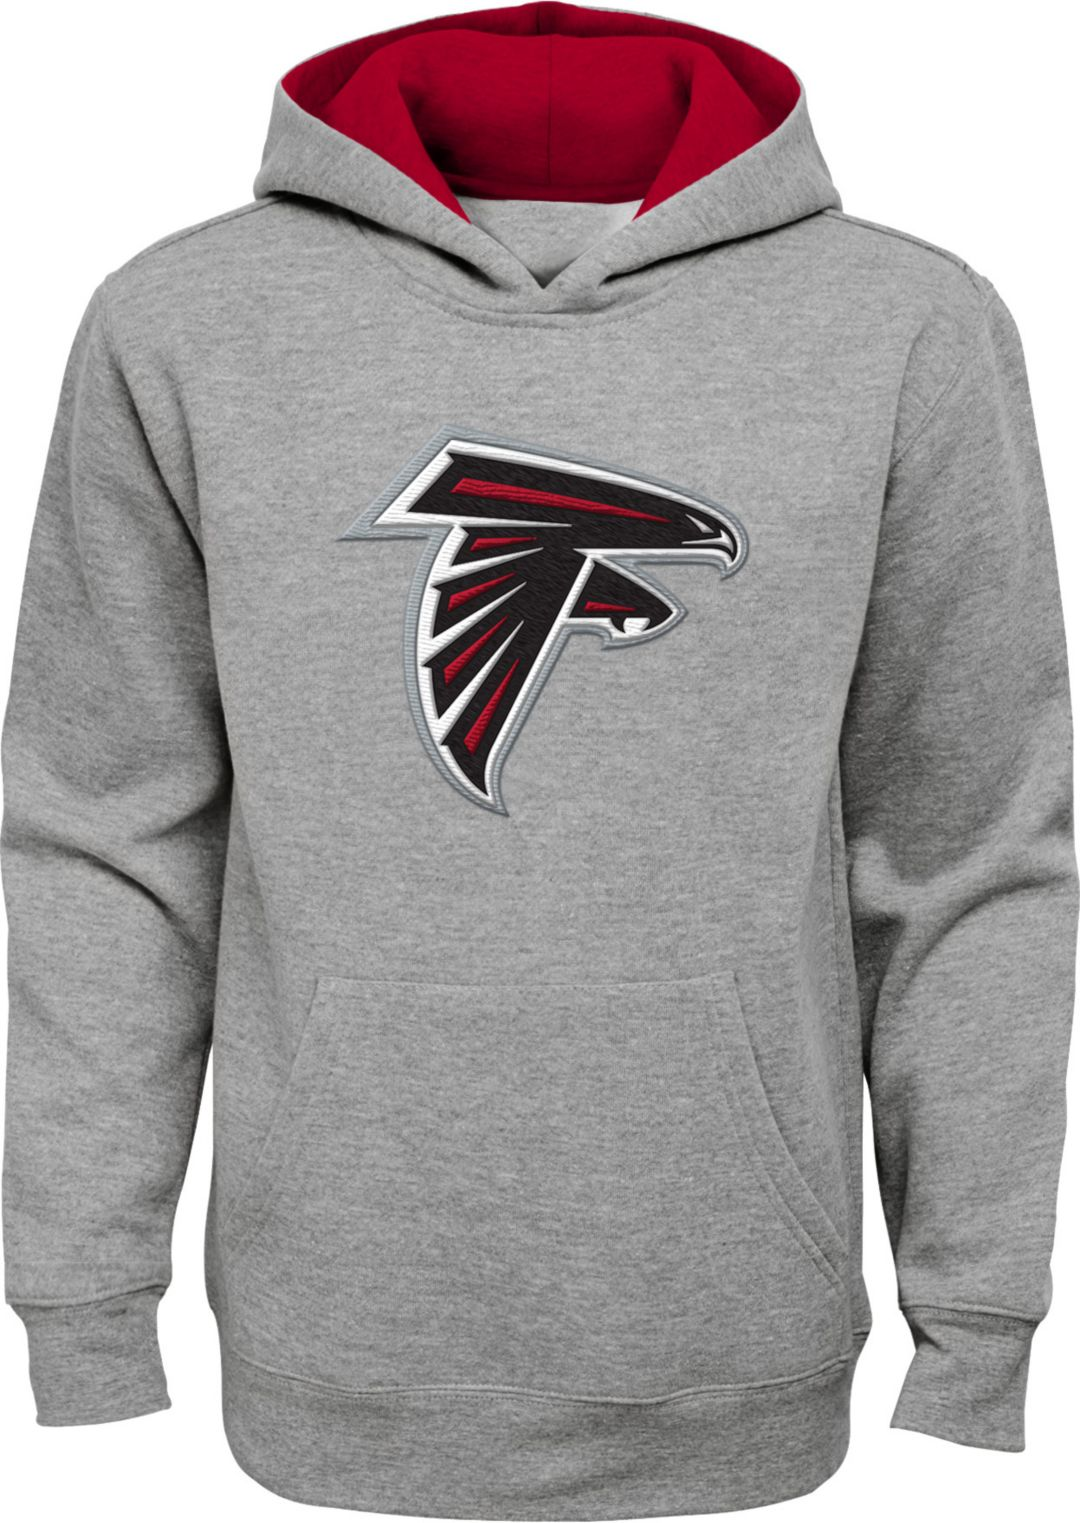 buy popular 2be0e ae701 NFL Team Apparel Youth Atlanta Falcons Prime Grey Pullover Hoodie